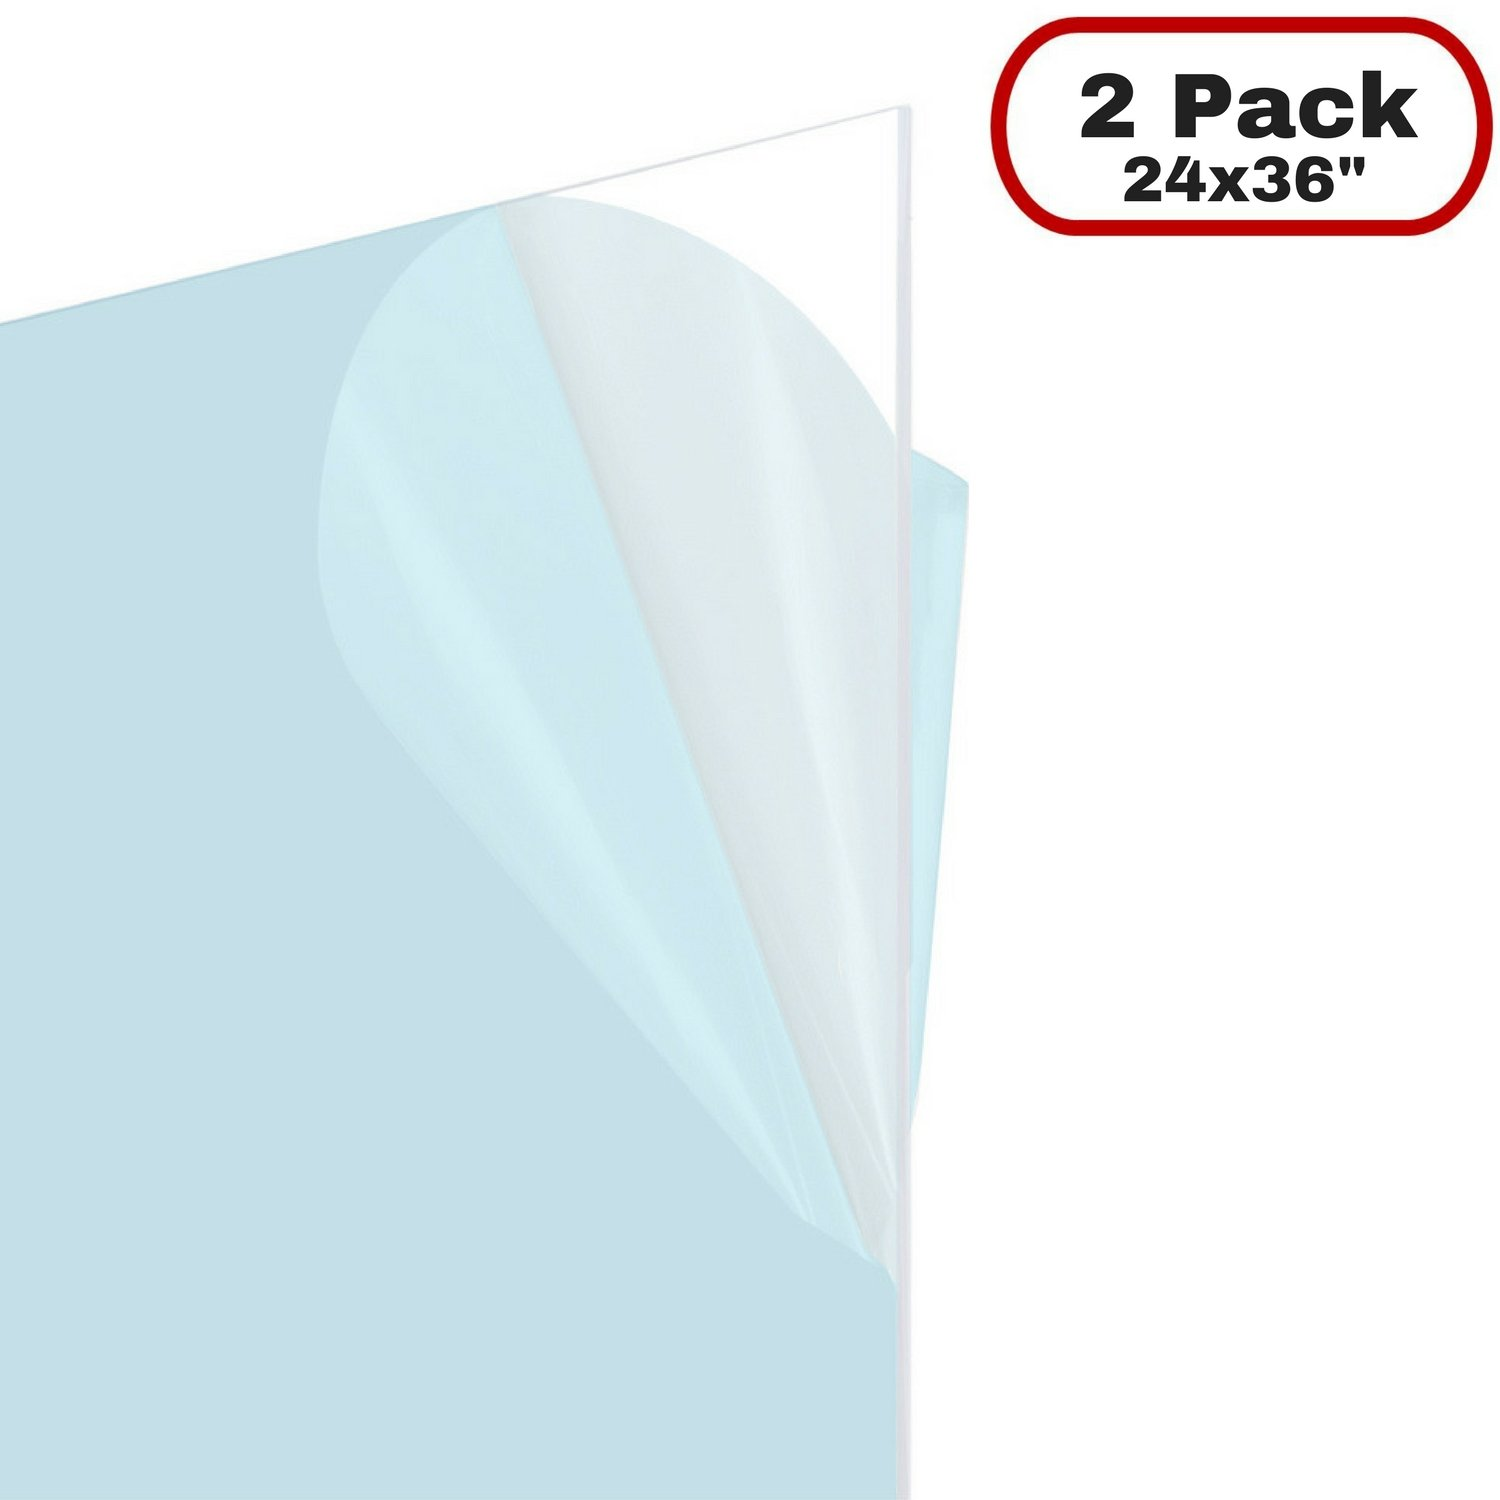 Icona Bay Flexible Clear Plastic Sheet (24x36 inch, 2 Pack, 0.03'' Thick), Multi Purpose PET (Polyethylene Terephthalate) Is Shatterproof, Lighter Easier To Cut Than Acrylic and Plexiglass Sheets